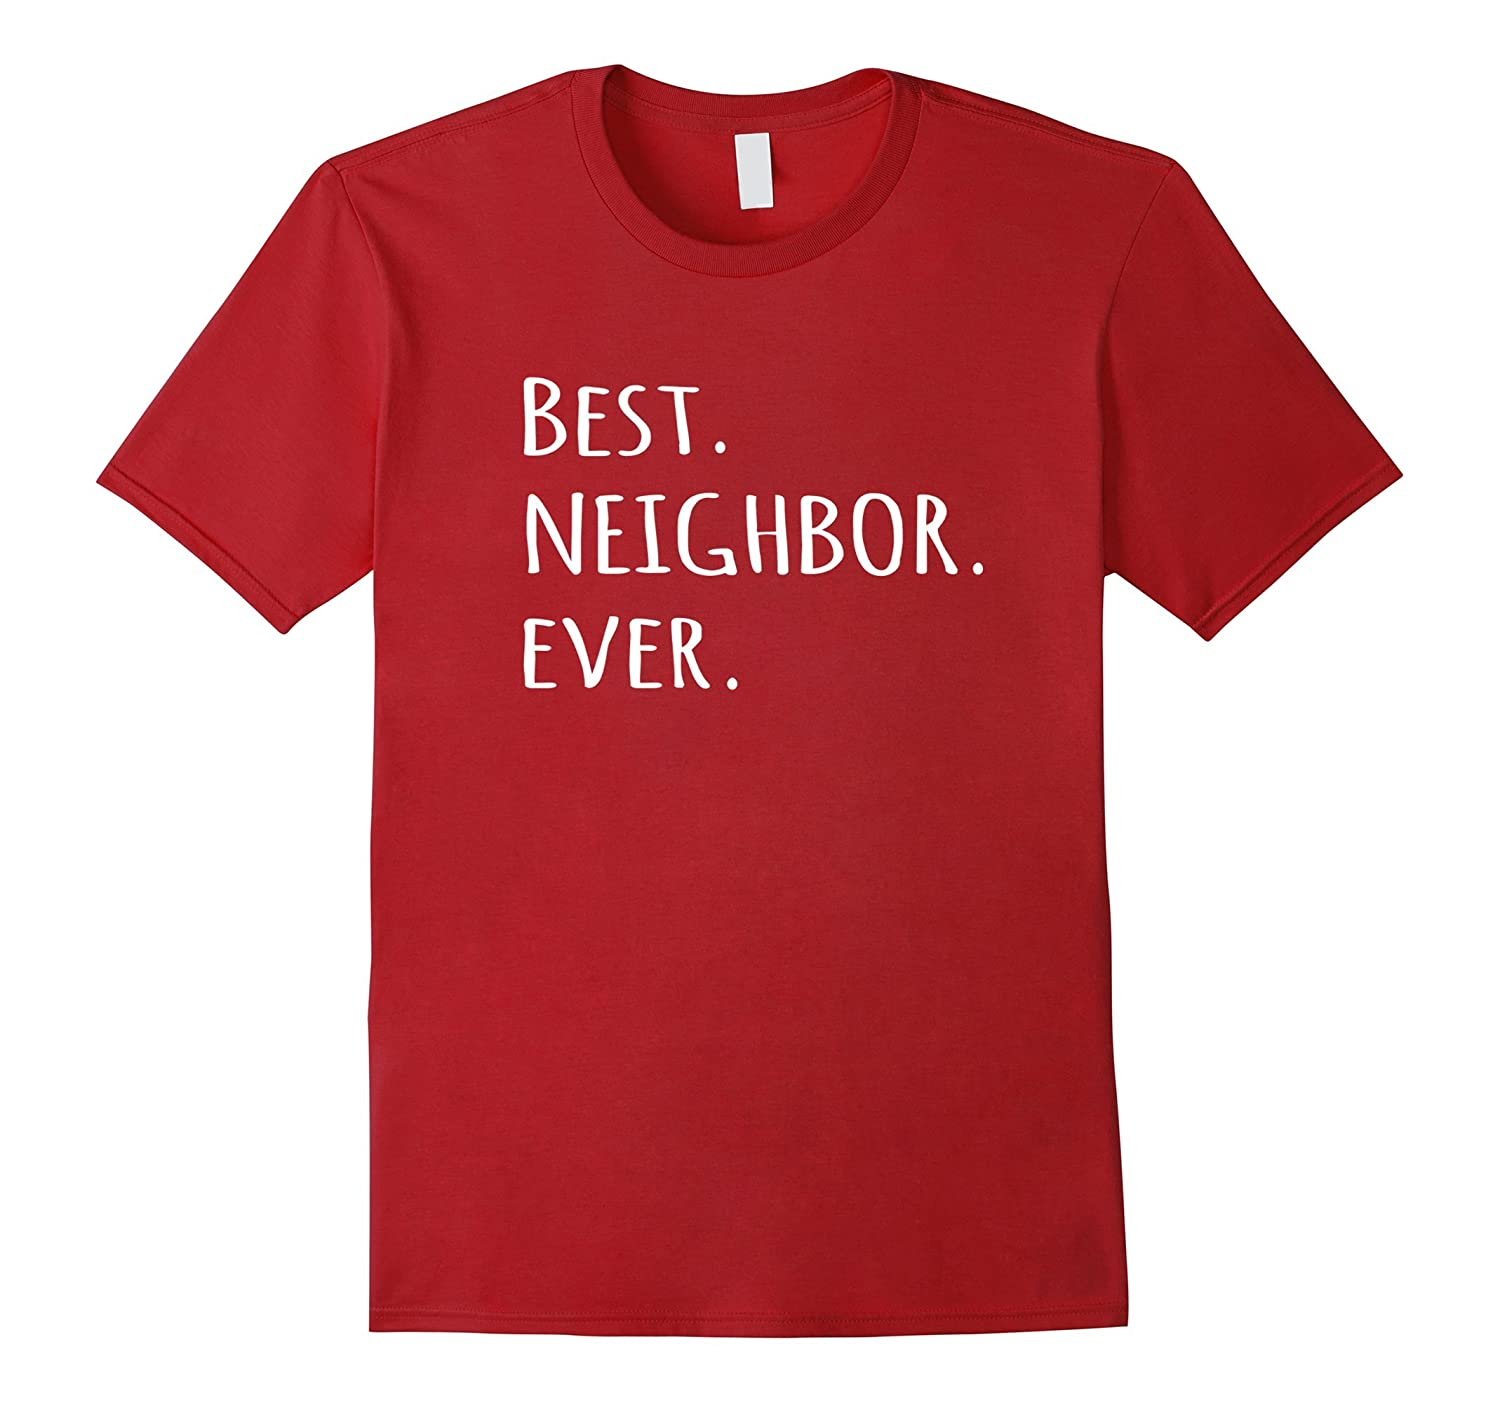 0038abf2836 Best Neighbor Ever T-shirt - fun friend next door tshirt tee-TH ...